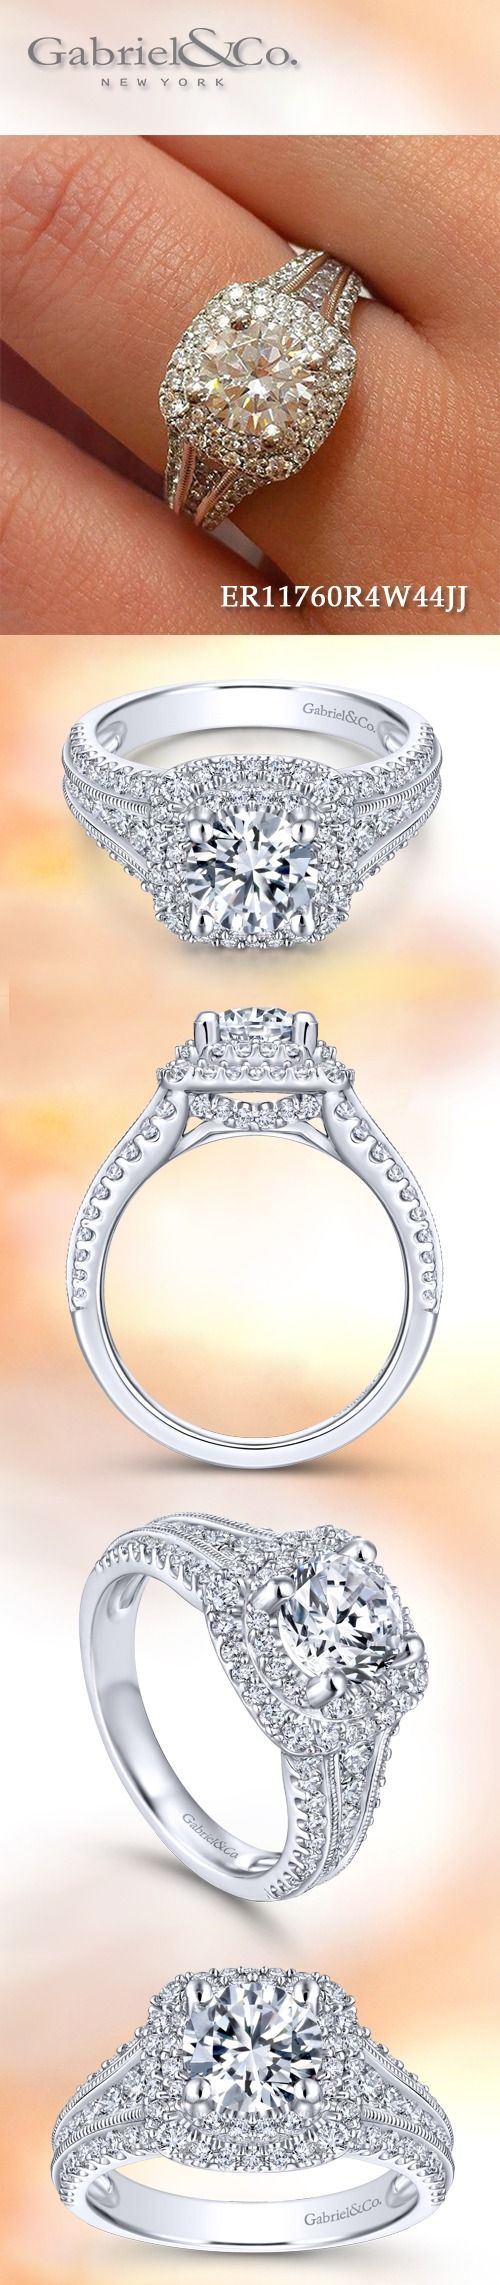 Gabriel & Co. - Voted #1 Most Preferred Fine Jewelry and Bridal Brand.  Gorgeous White Gold Round Double Halo Engagement Ring!